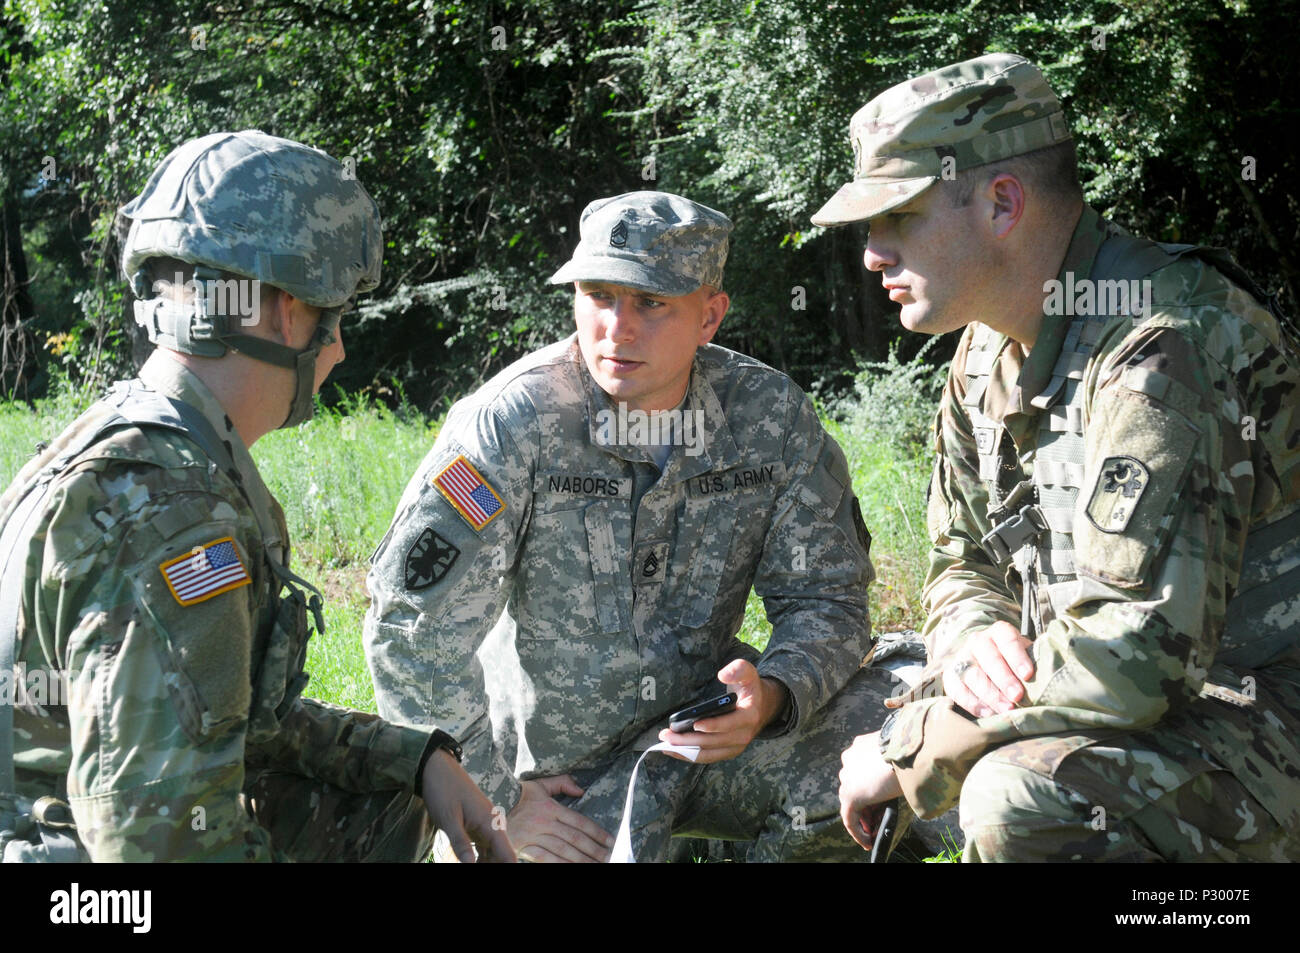 U.S. Army Lt. Ben Rymer and U.S. Army Sgt. 1st Class Chad Nabors from the 678th Air Defense Artillery Brigade, South Carolina National Guard, provide instructions to soldiers and officers during training at the 678th Air Defense Brigade in Eastover, S.C., August 16, 2016.  The soldiers conducted battle drills reacting to indirect fire while dismounted. (U.S. Army National Guard photo by Staff Sgt. Kevin Pickering/Released) - Stock Image